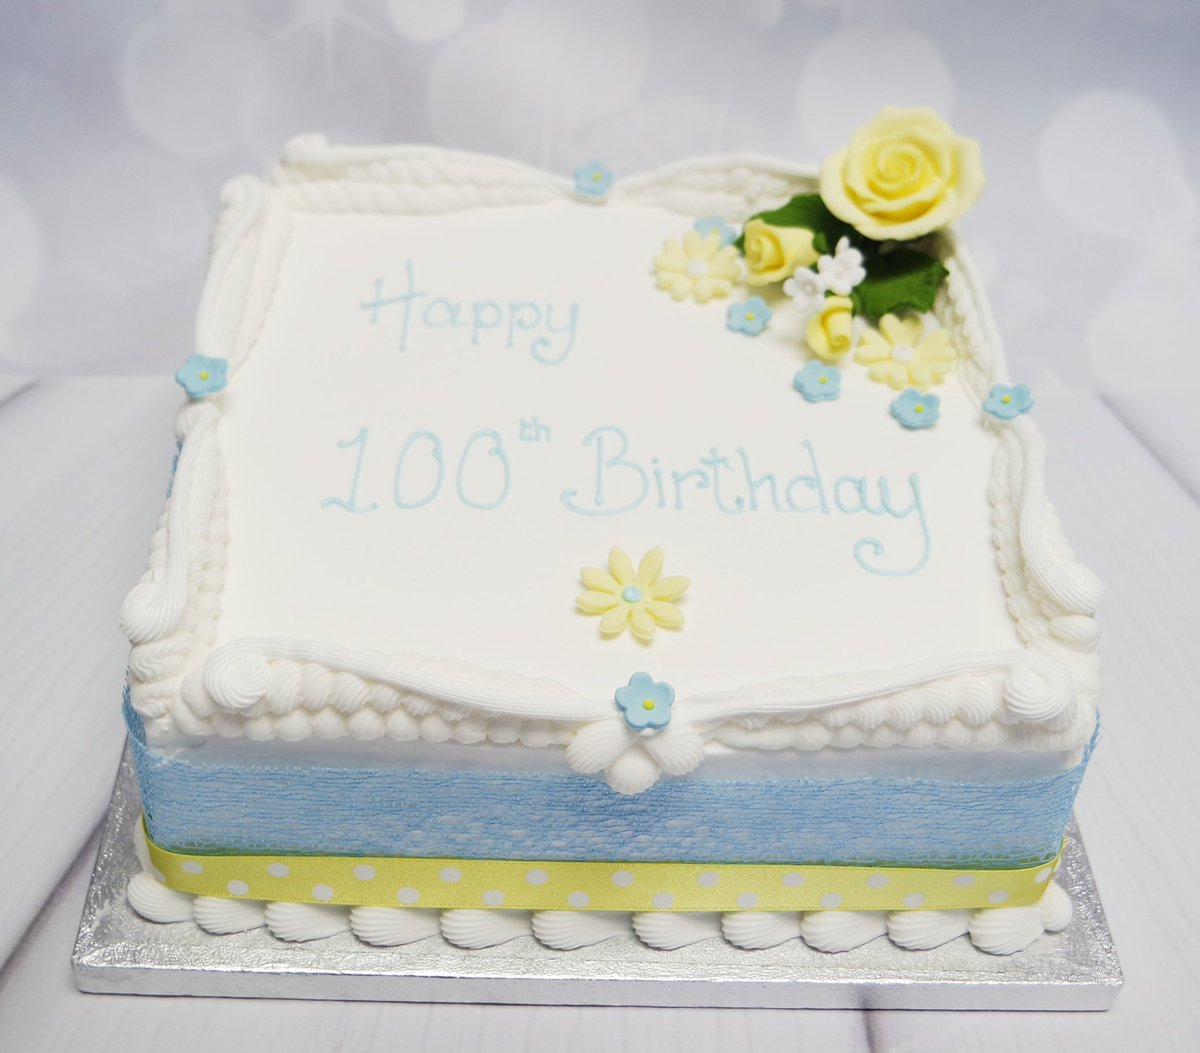 Surprising Crafty Cakes On Twitter A Very Special Royal Iced Fruit Cake To Personalised Birthday Cards Epsylily Jamesorg